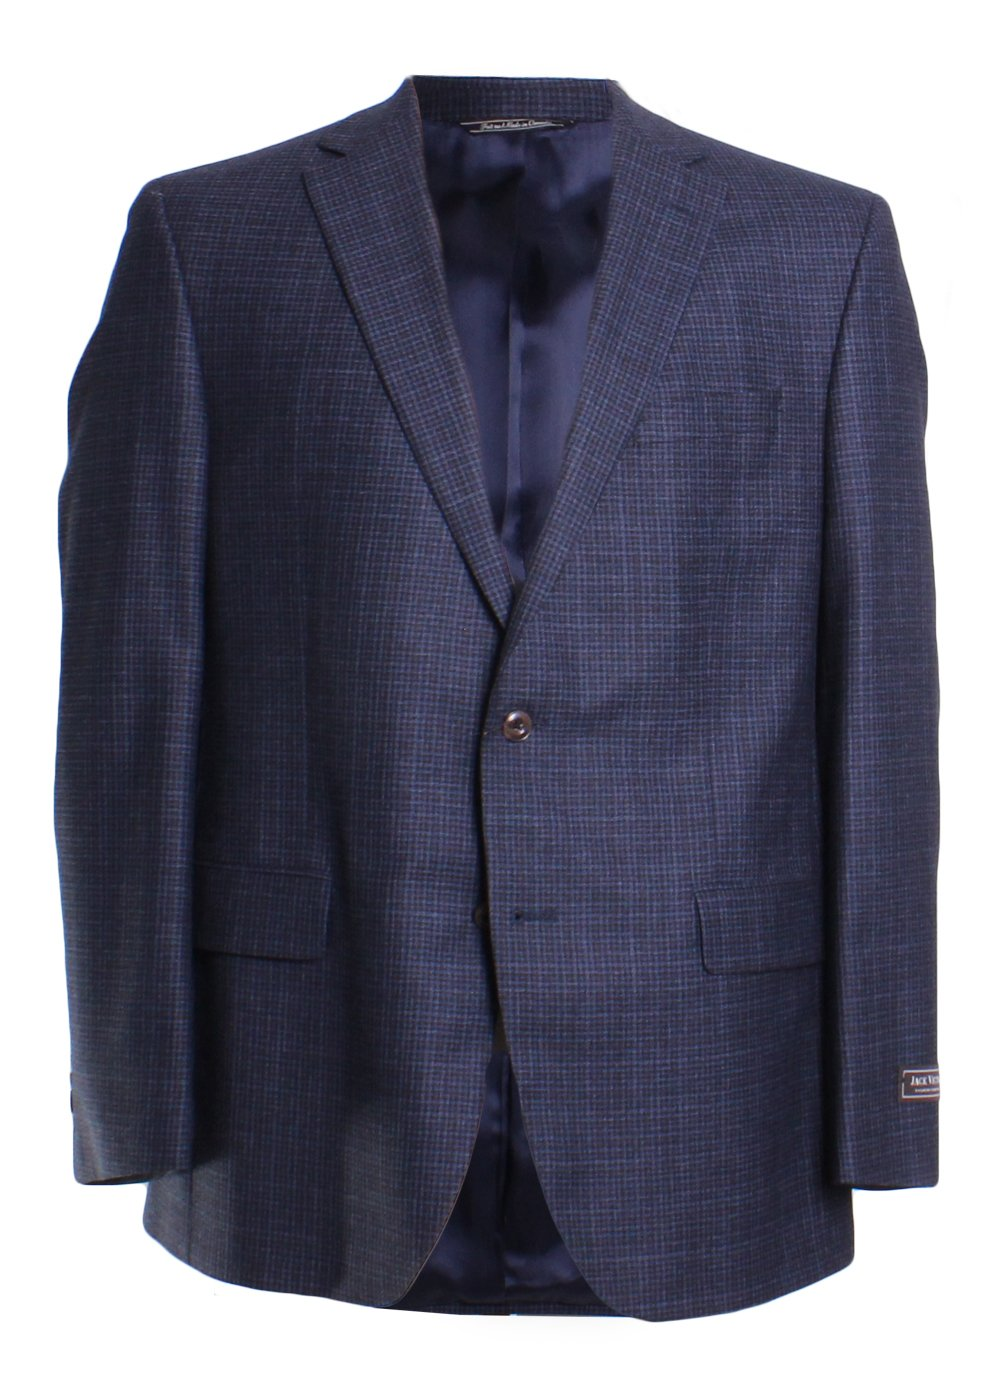 Jack Victor Sportcoat 42S As Shown